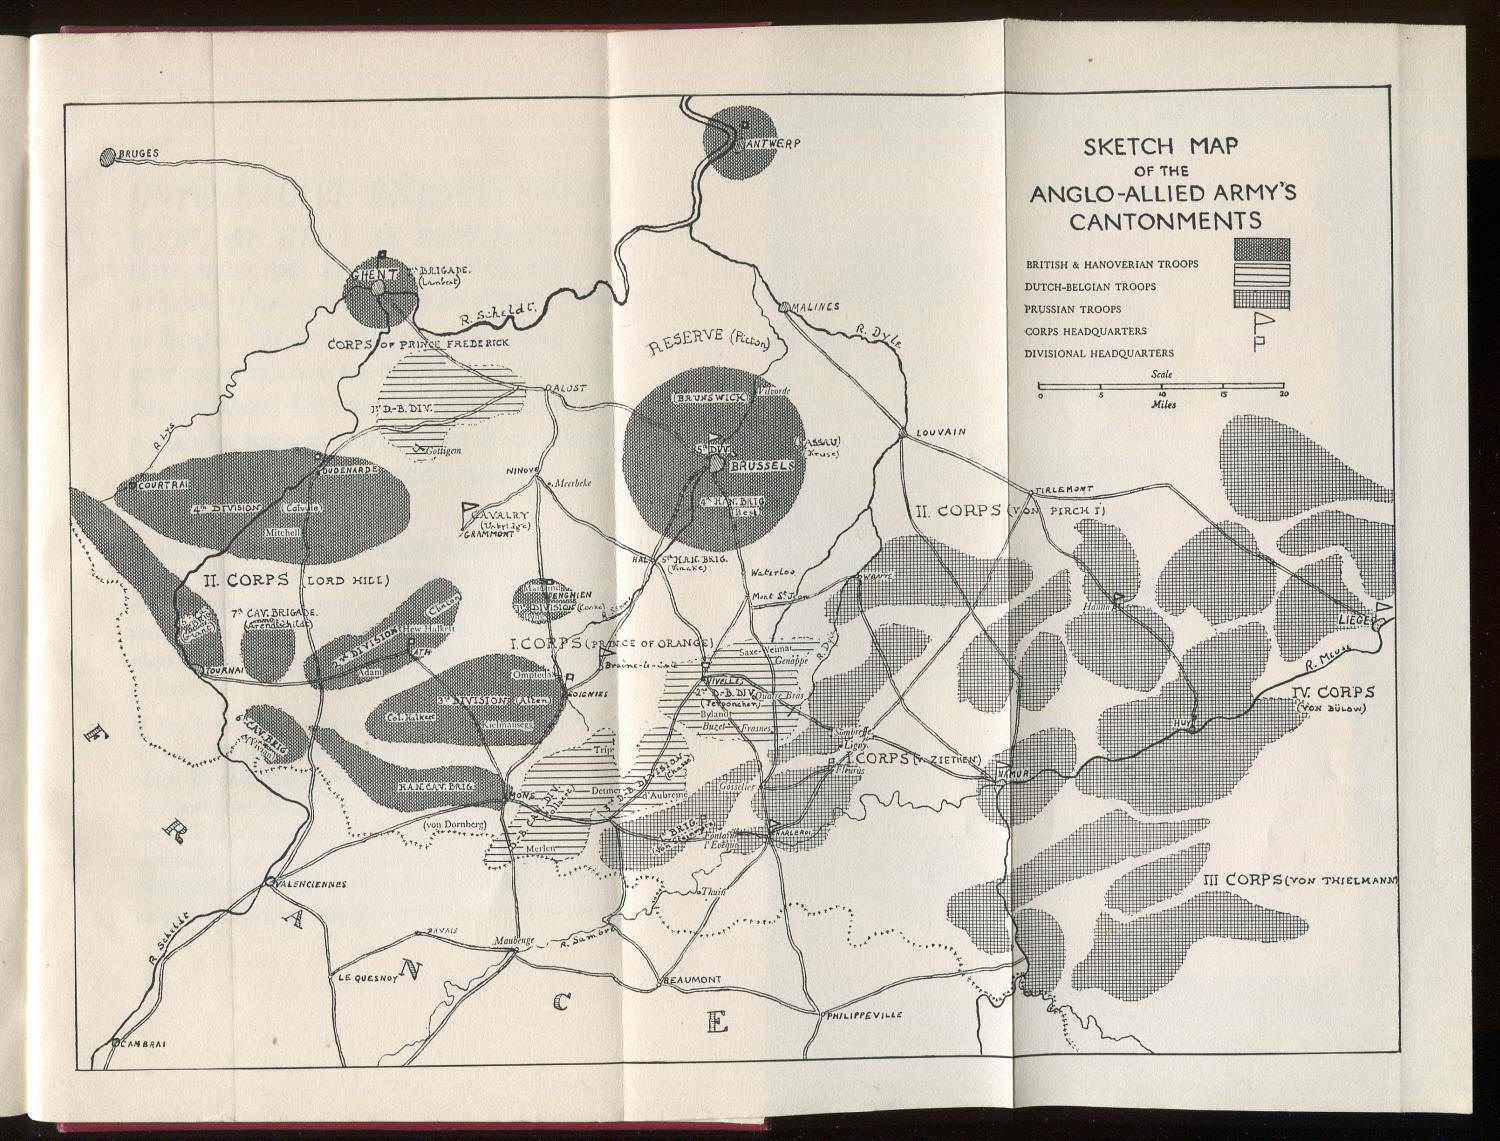 Folding map of Anglo-Allied Army's cantonments